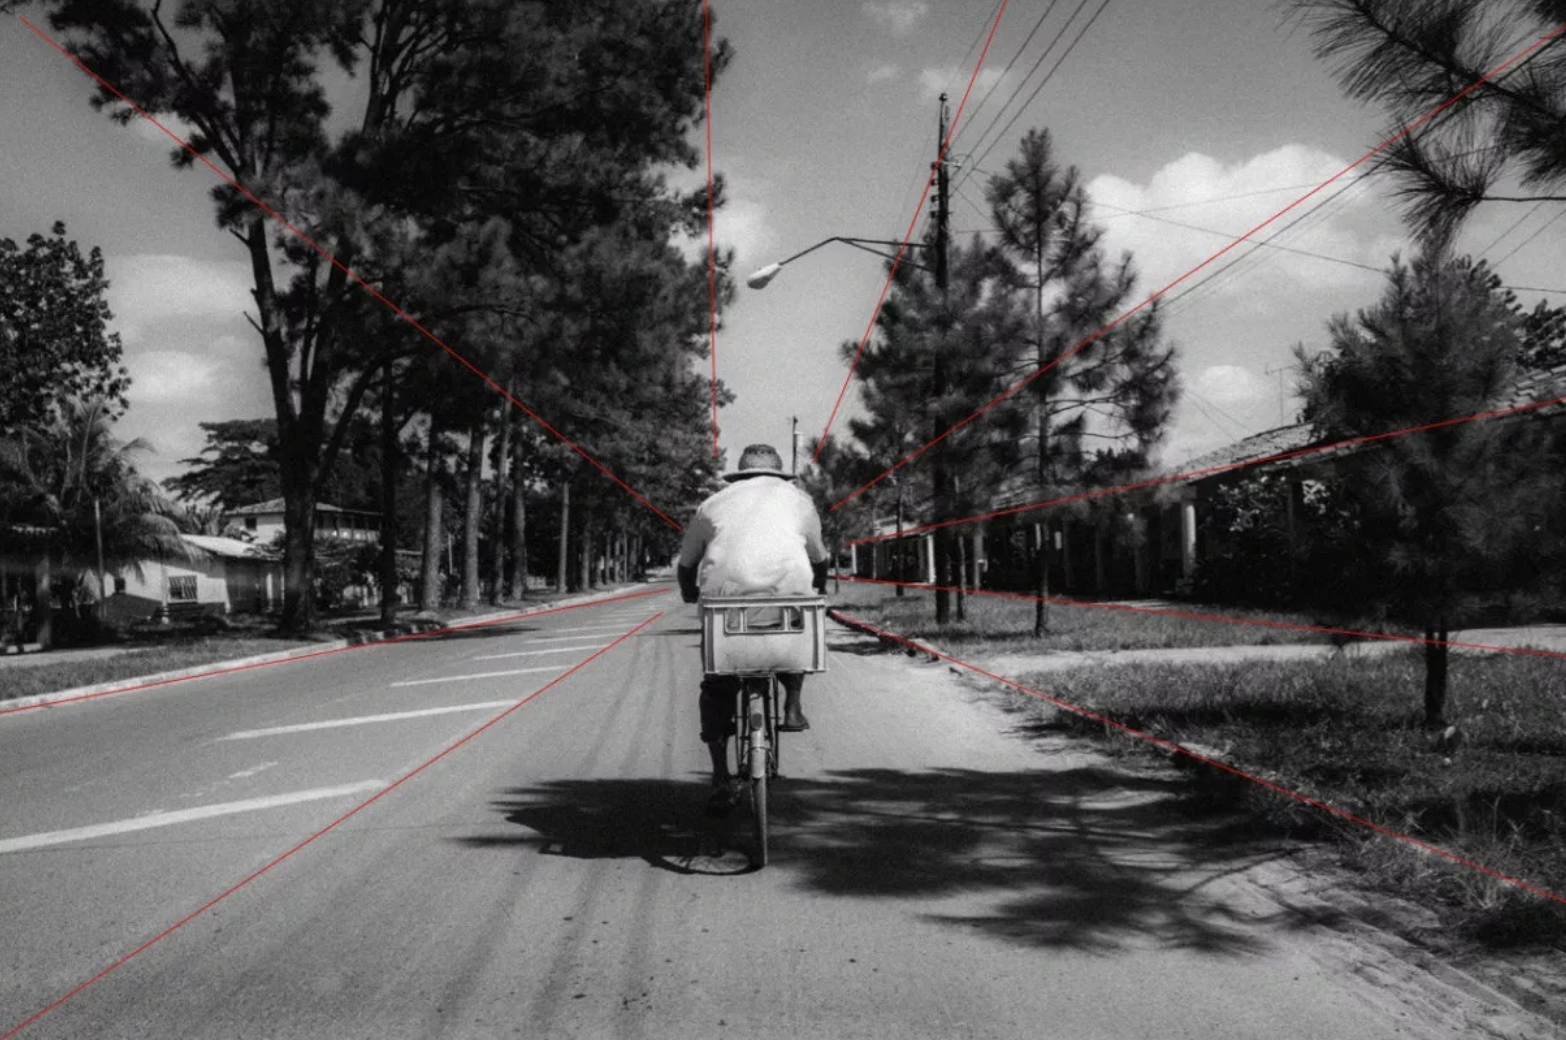 A photograph of a cyclist in the middle of the screen with many leading lines pointing towards him.